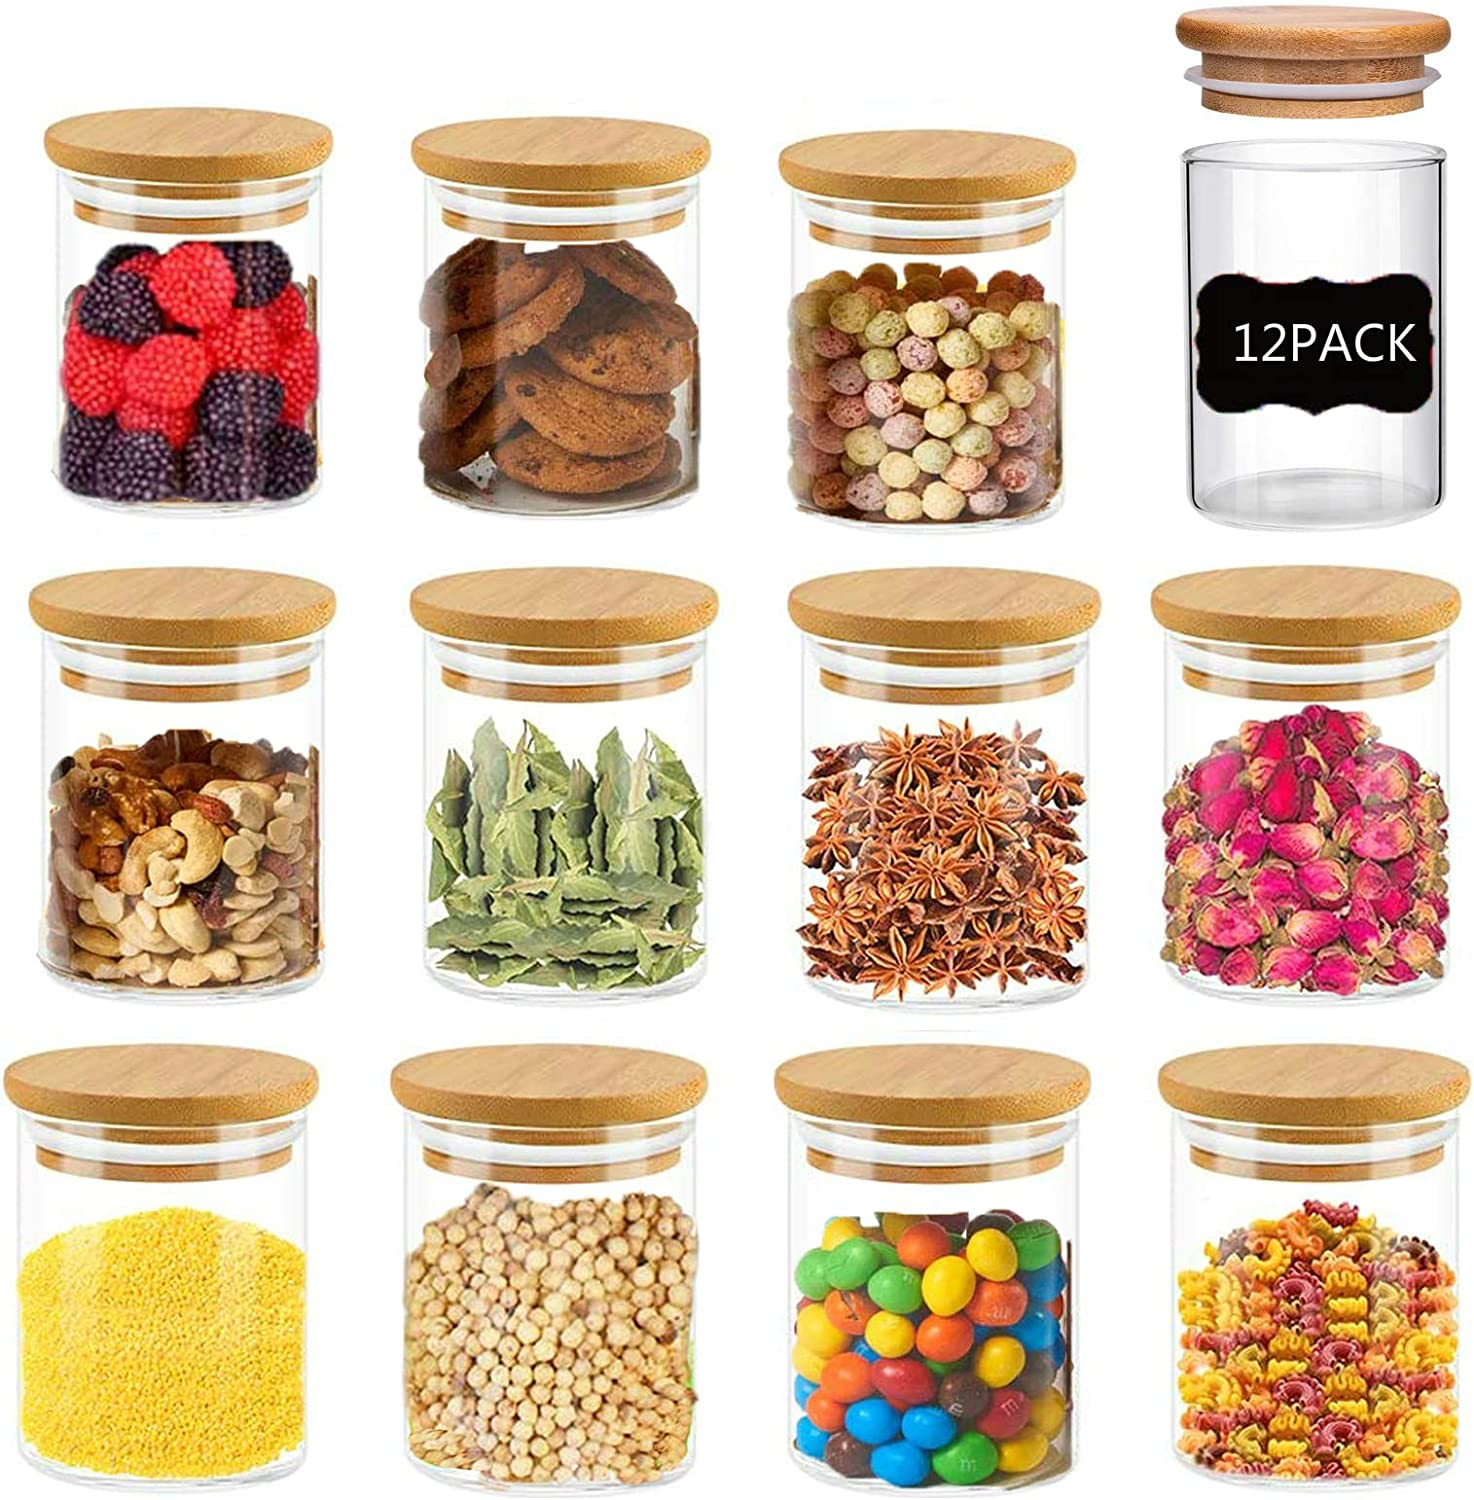 Glass Jars with Bamboo Lids, 150ml /5.3oz Clear Glass Air Tight Spice Jars,12 Piece Small Food Storage Containers for Home Kitchen, Tea, Herbs, Sugar, Salt, Coffee, Flour, Herbs, Grains